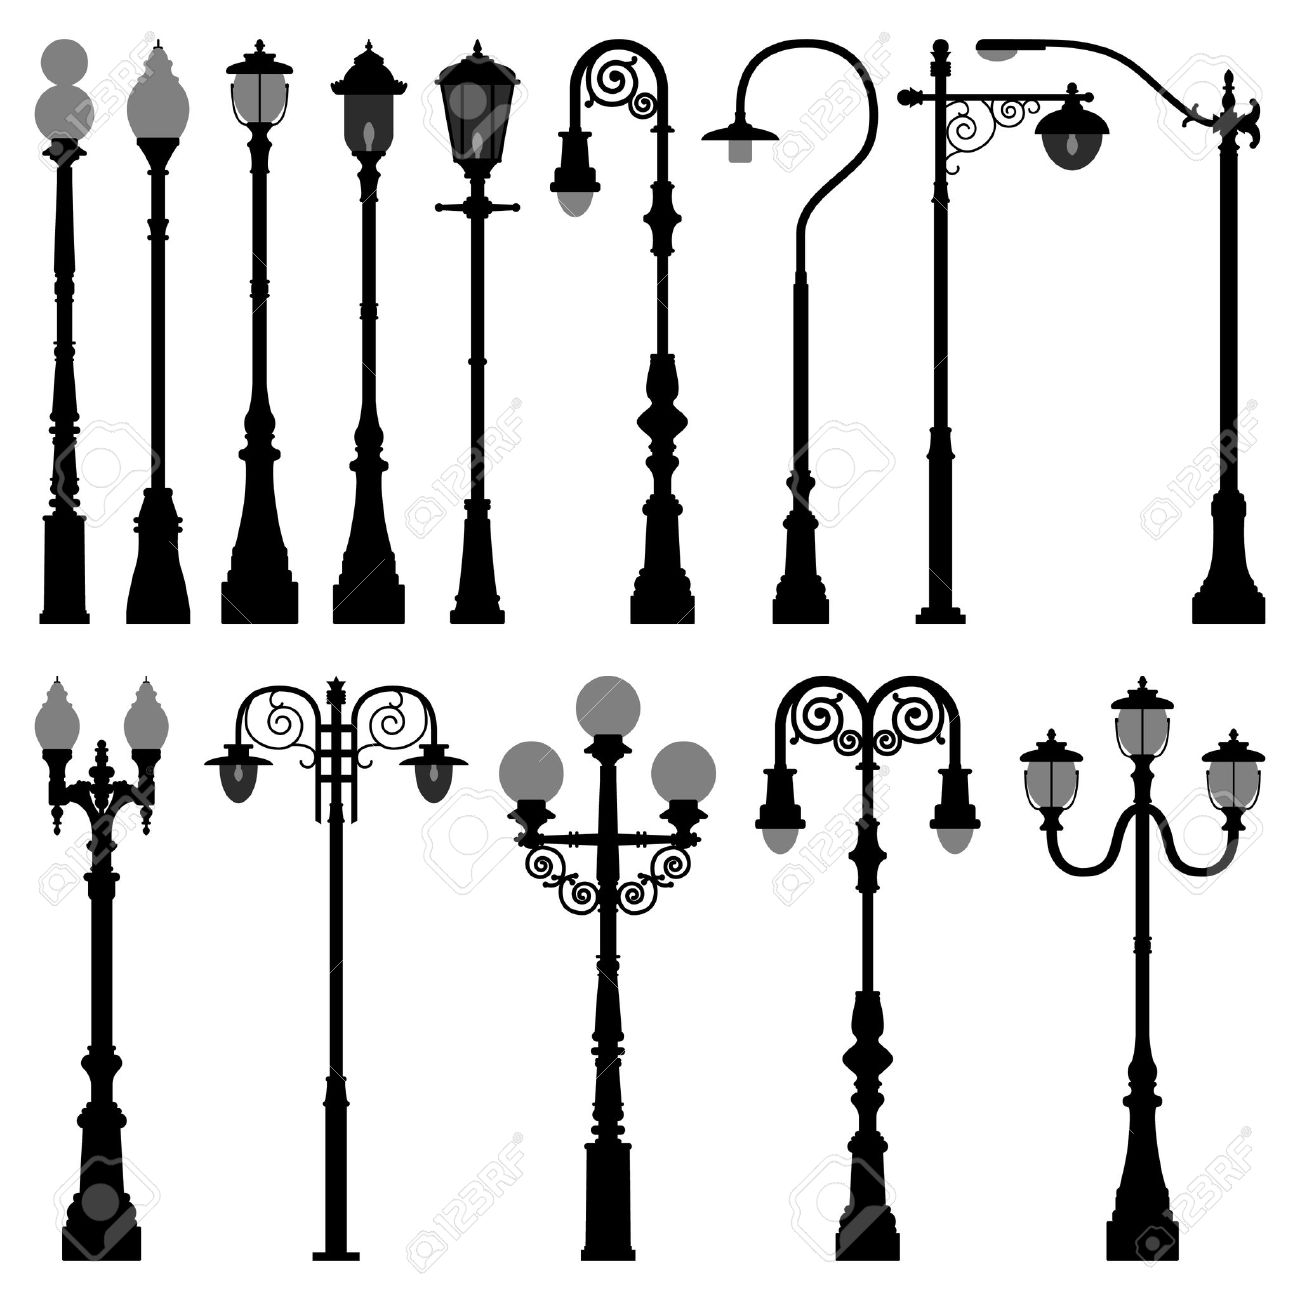 Lamp Post Lamppost Street Road Light Royalty Free Cliparts ... for Indoor Street Light Lamp  51ane